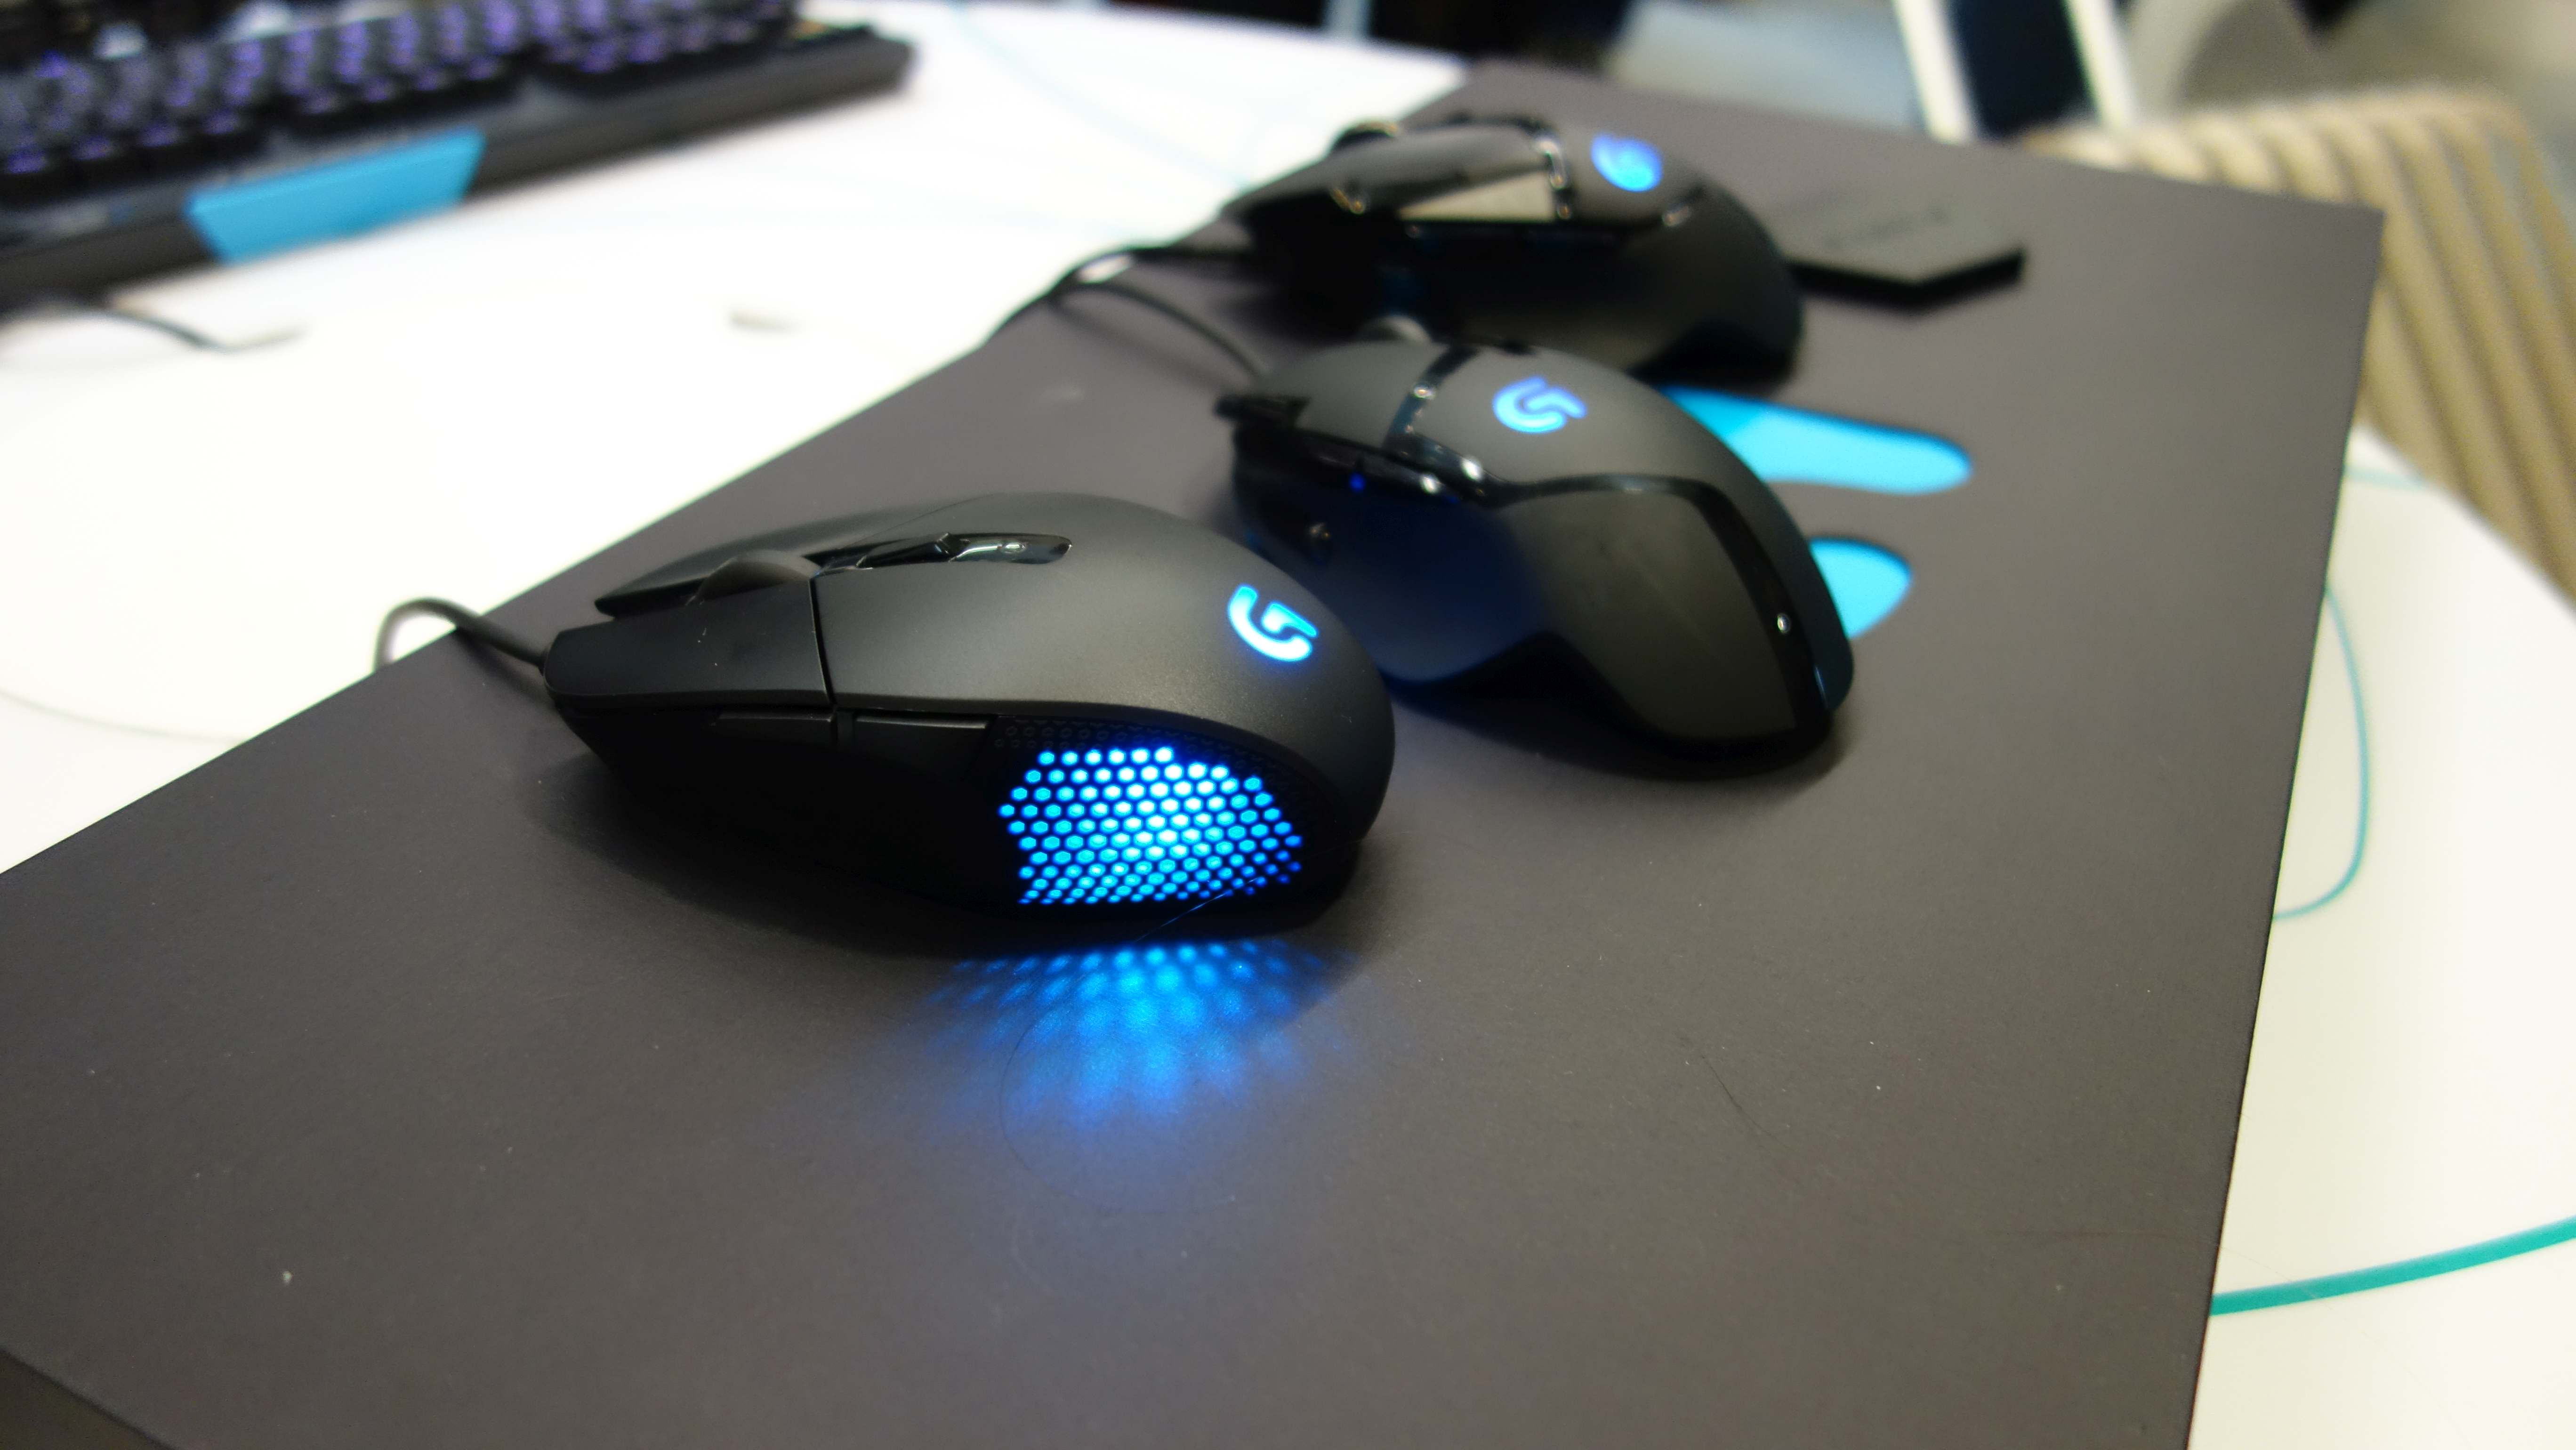 An Inside Look at How Logitech Designs Its Gaming Mice | PC Gamer